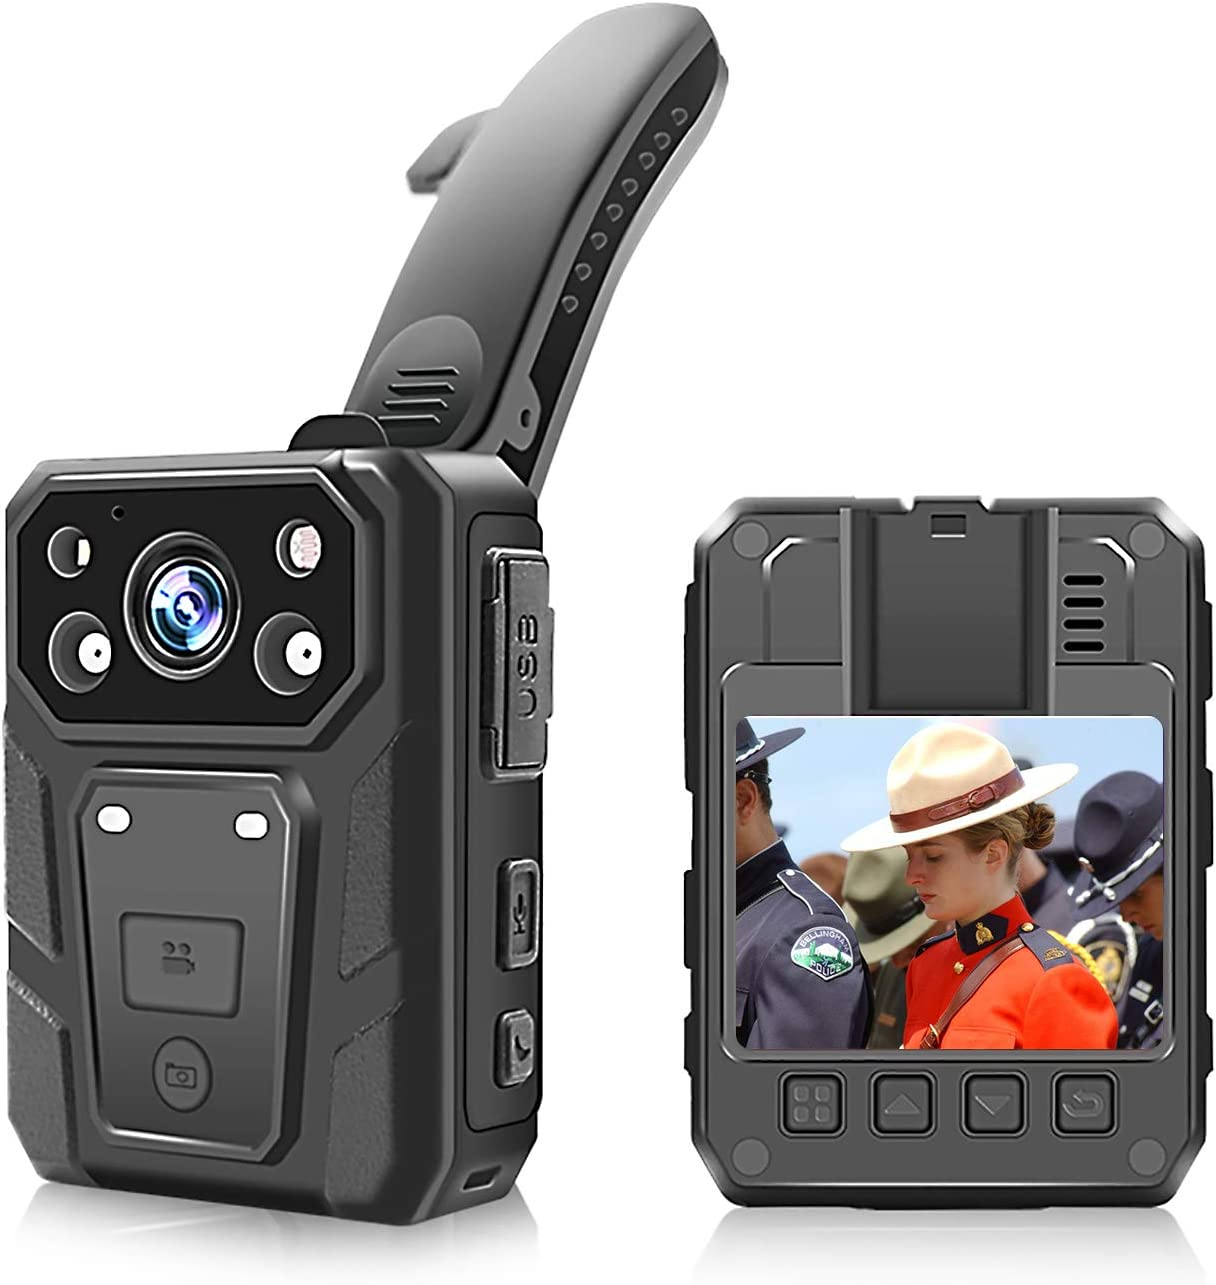 CAMMHD Body Camera with Audio and Video Recording Wearable, 64 GB Memory, Waterproof and Auto Night Vision,15 Hours Recording